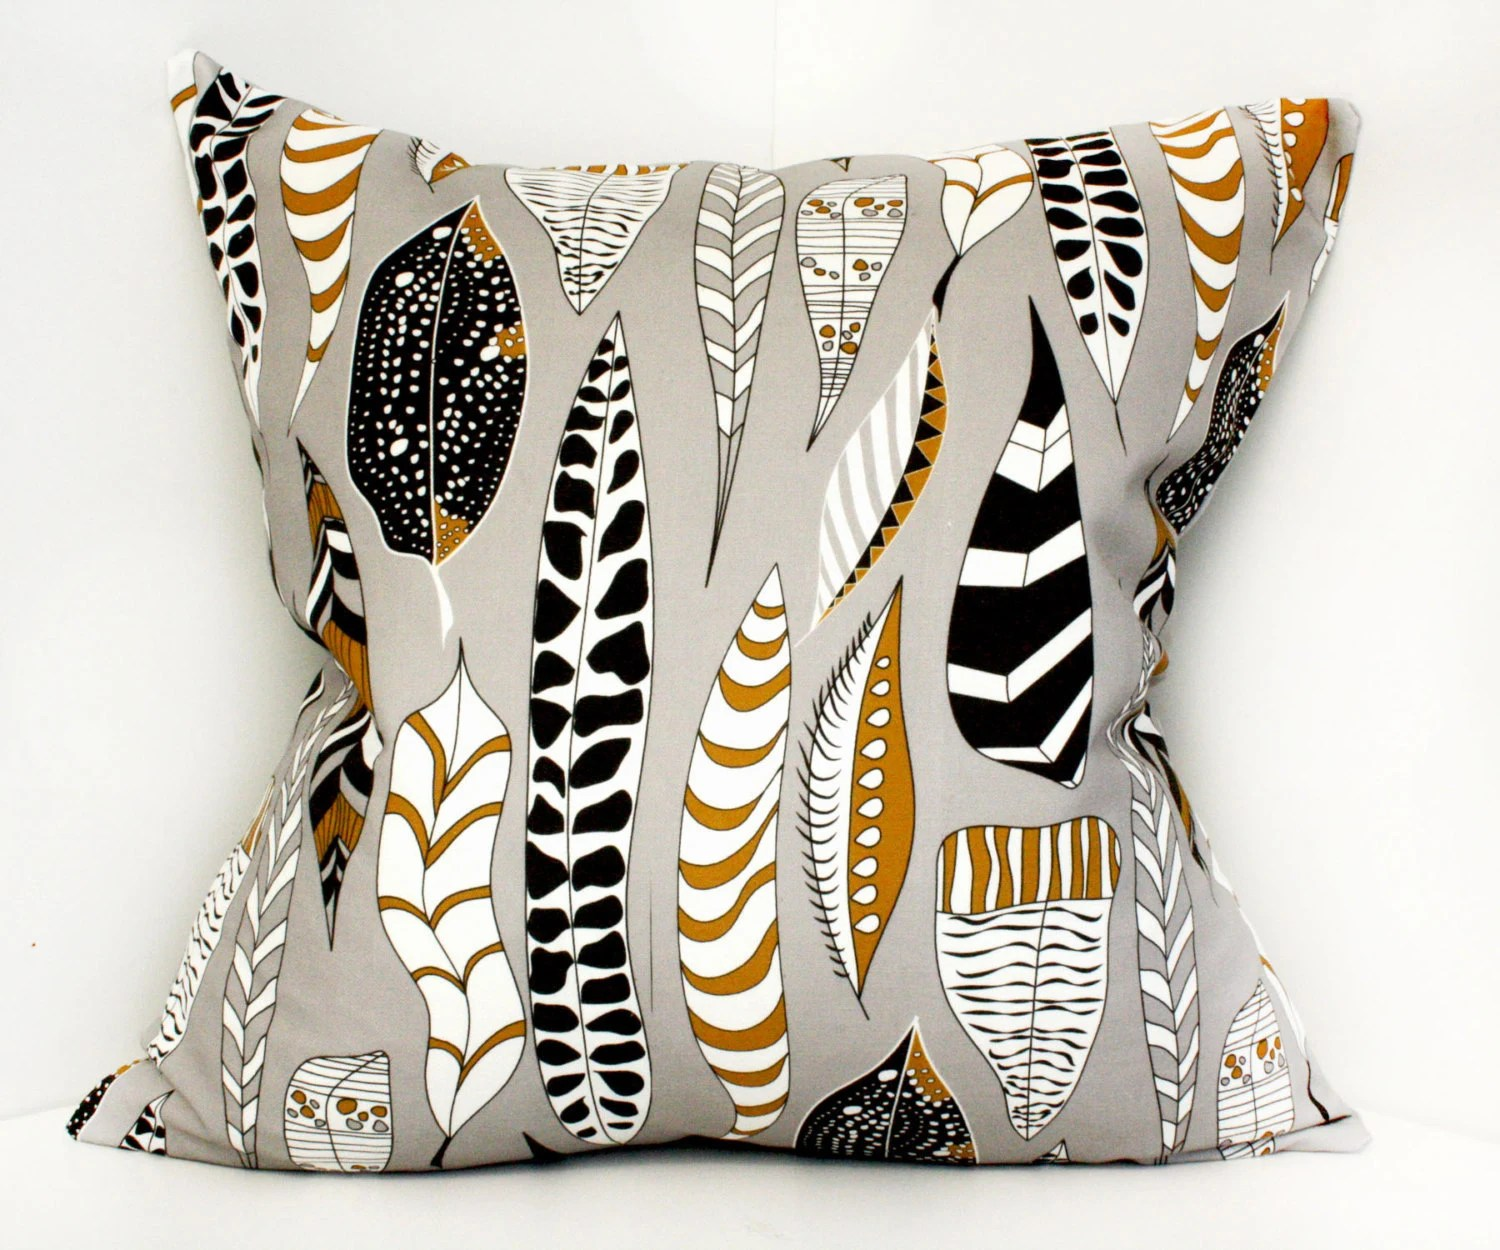 Decorative pillow cover, cushion cover, pillowcase, home gift - 18x18 Grey, Brown, Black- ships 10 days after order - NewMomDesigns